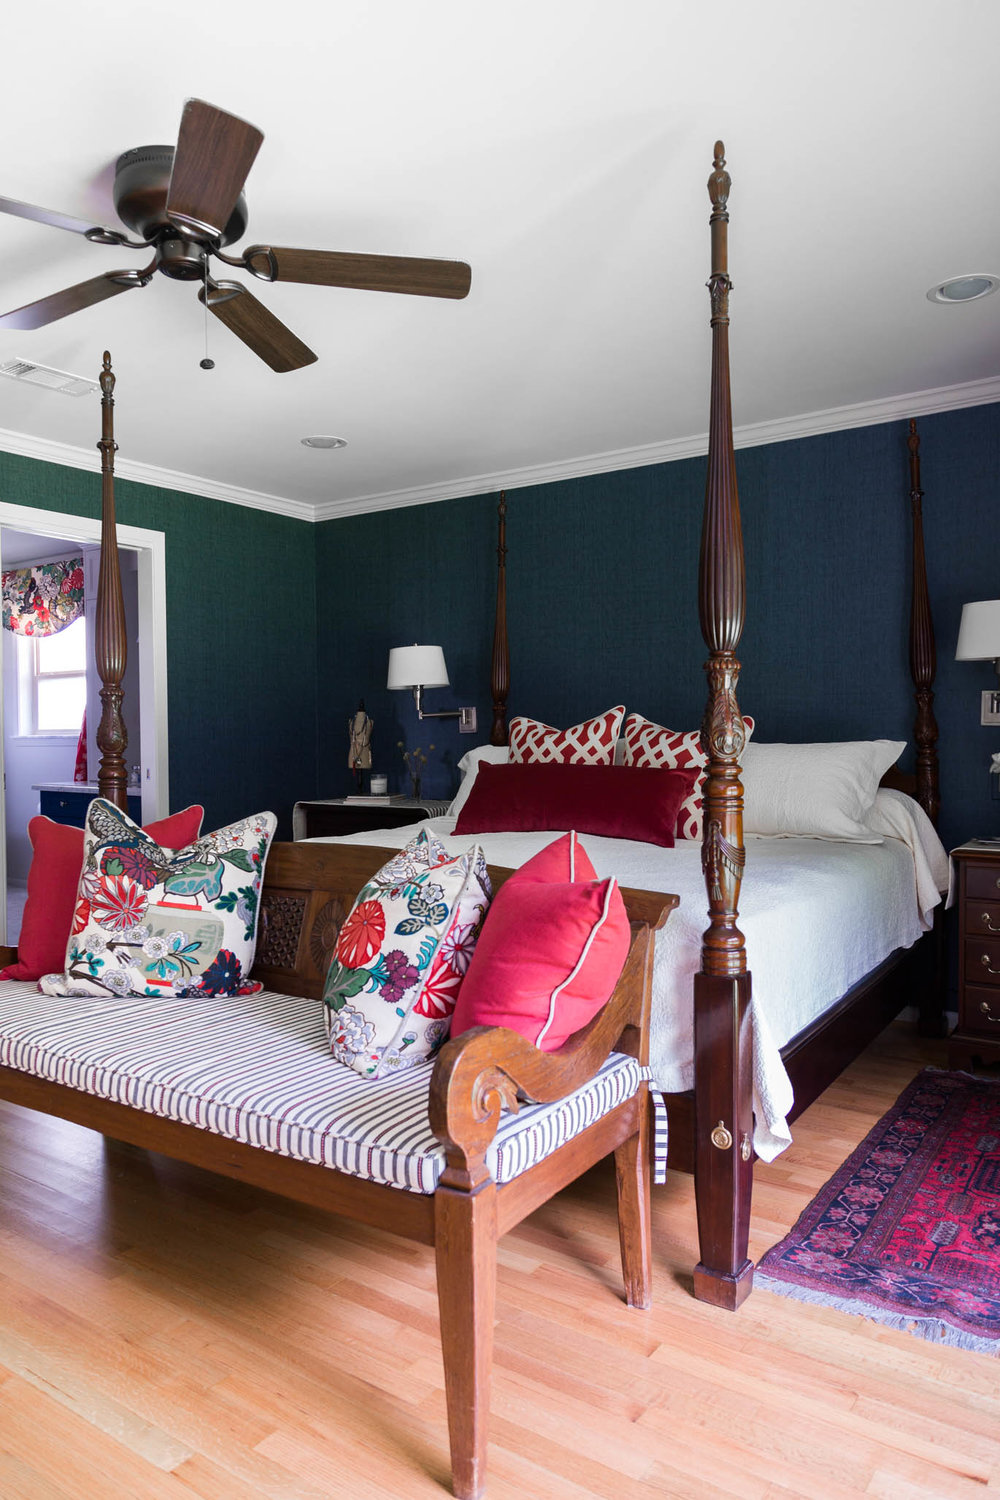 Bedroom makeover with navy grasscloth and colorful pillows with Chiang Mai Dragon fabric | Designer- Carla Aston, Photographer- Tori Aston